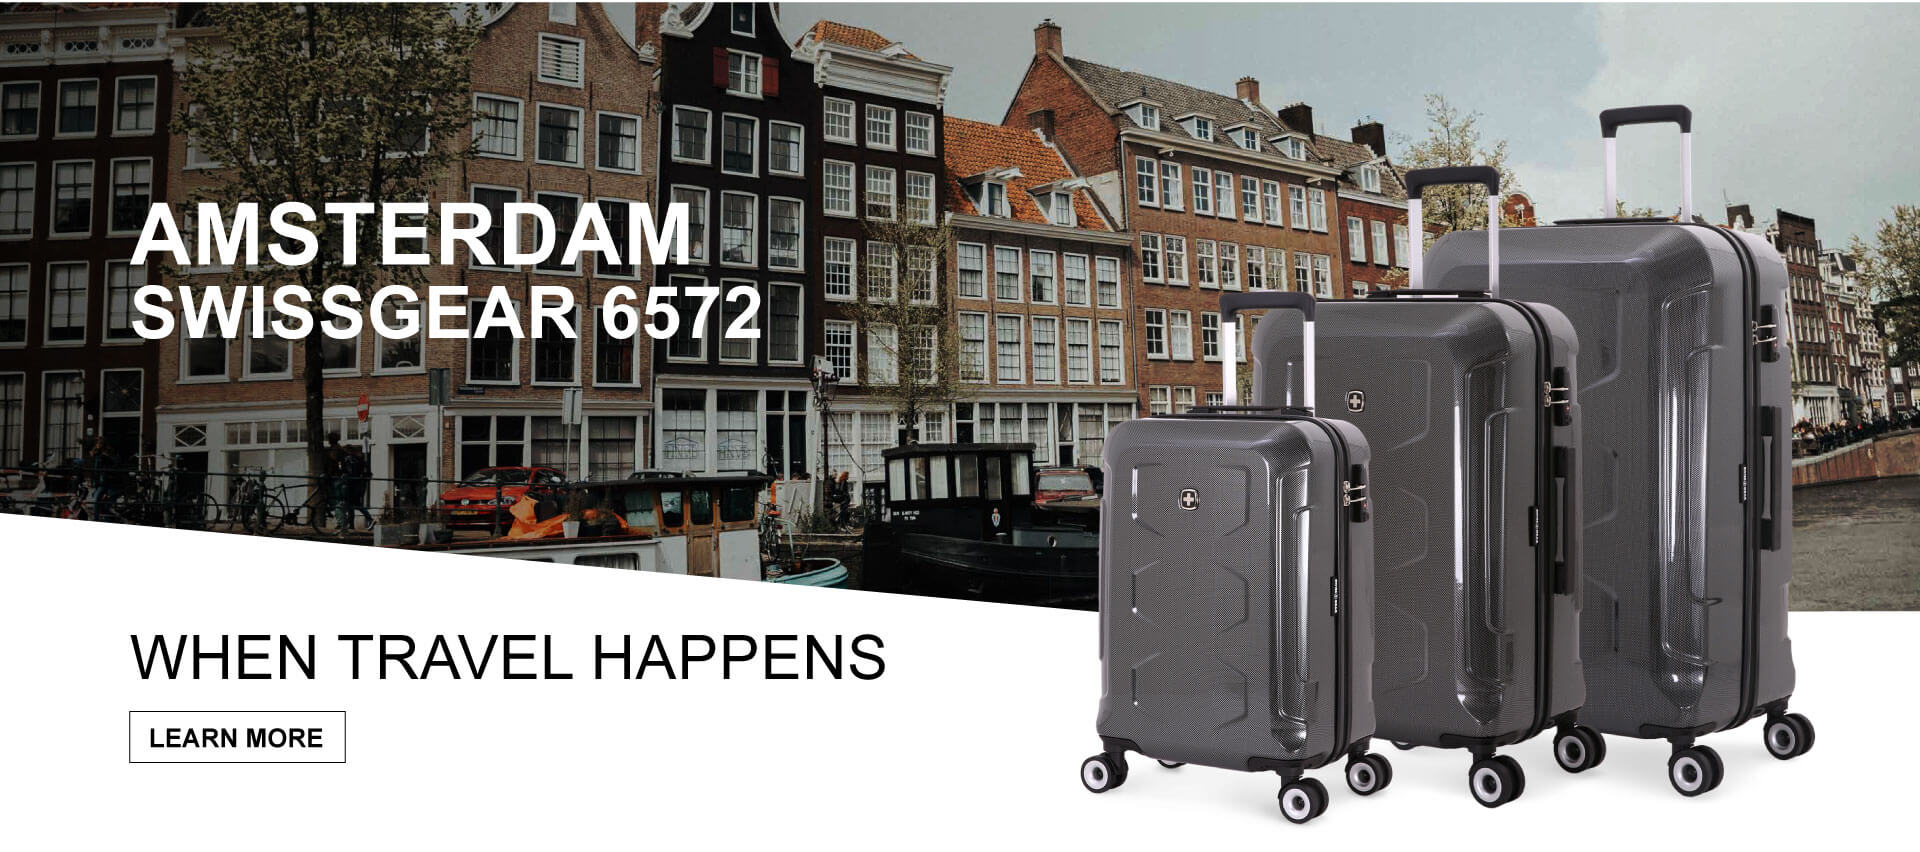 Escape to Amsterdam with SWISSGEAR